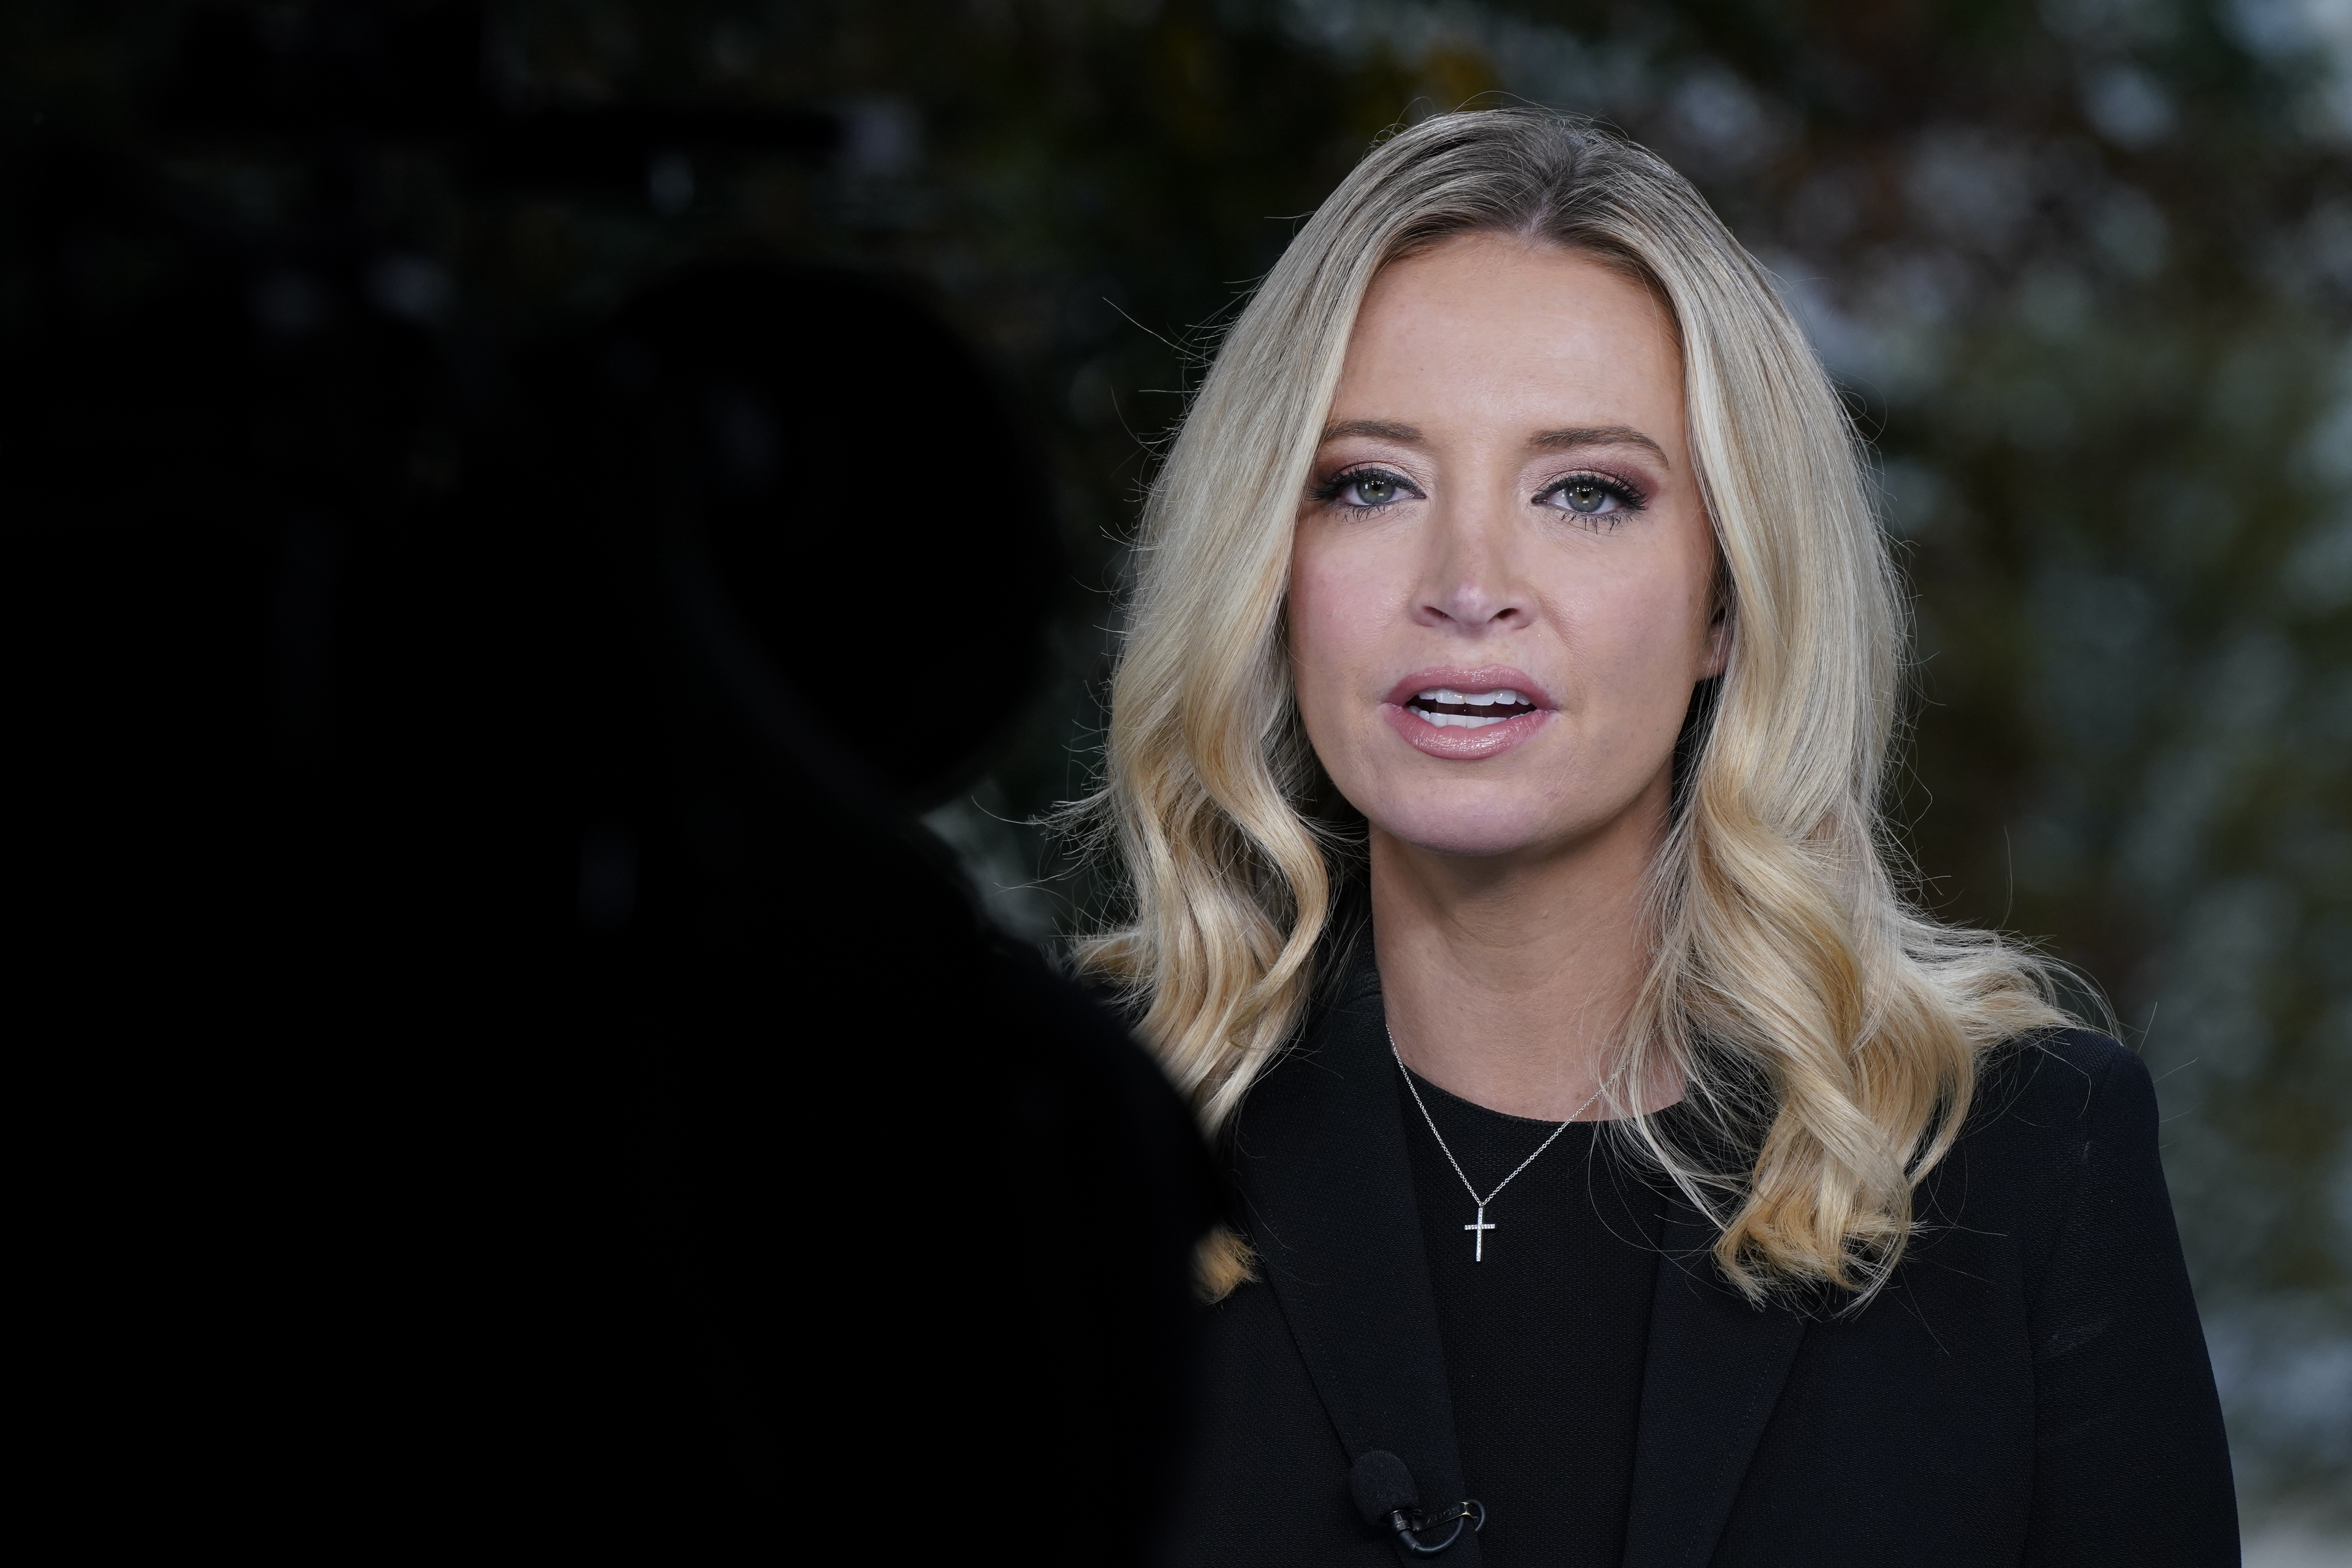 White House press secretary Kayleigh McEnany, is interviewed by Fox News, Oct. 4, 2020, at the White House in Washington.